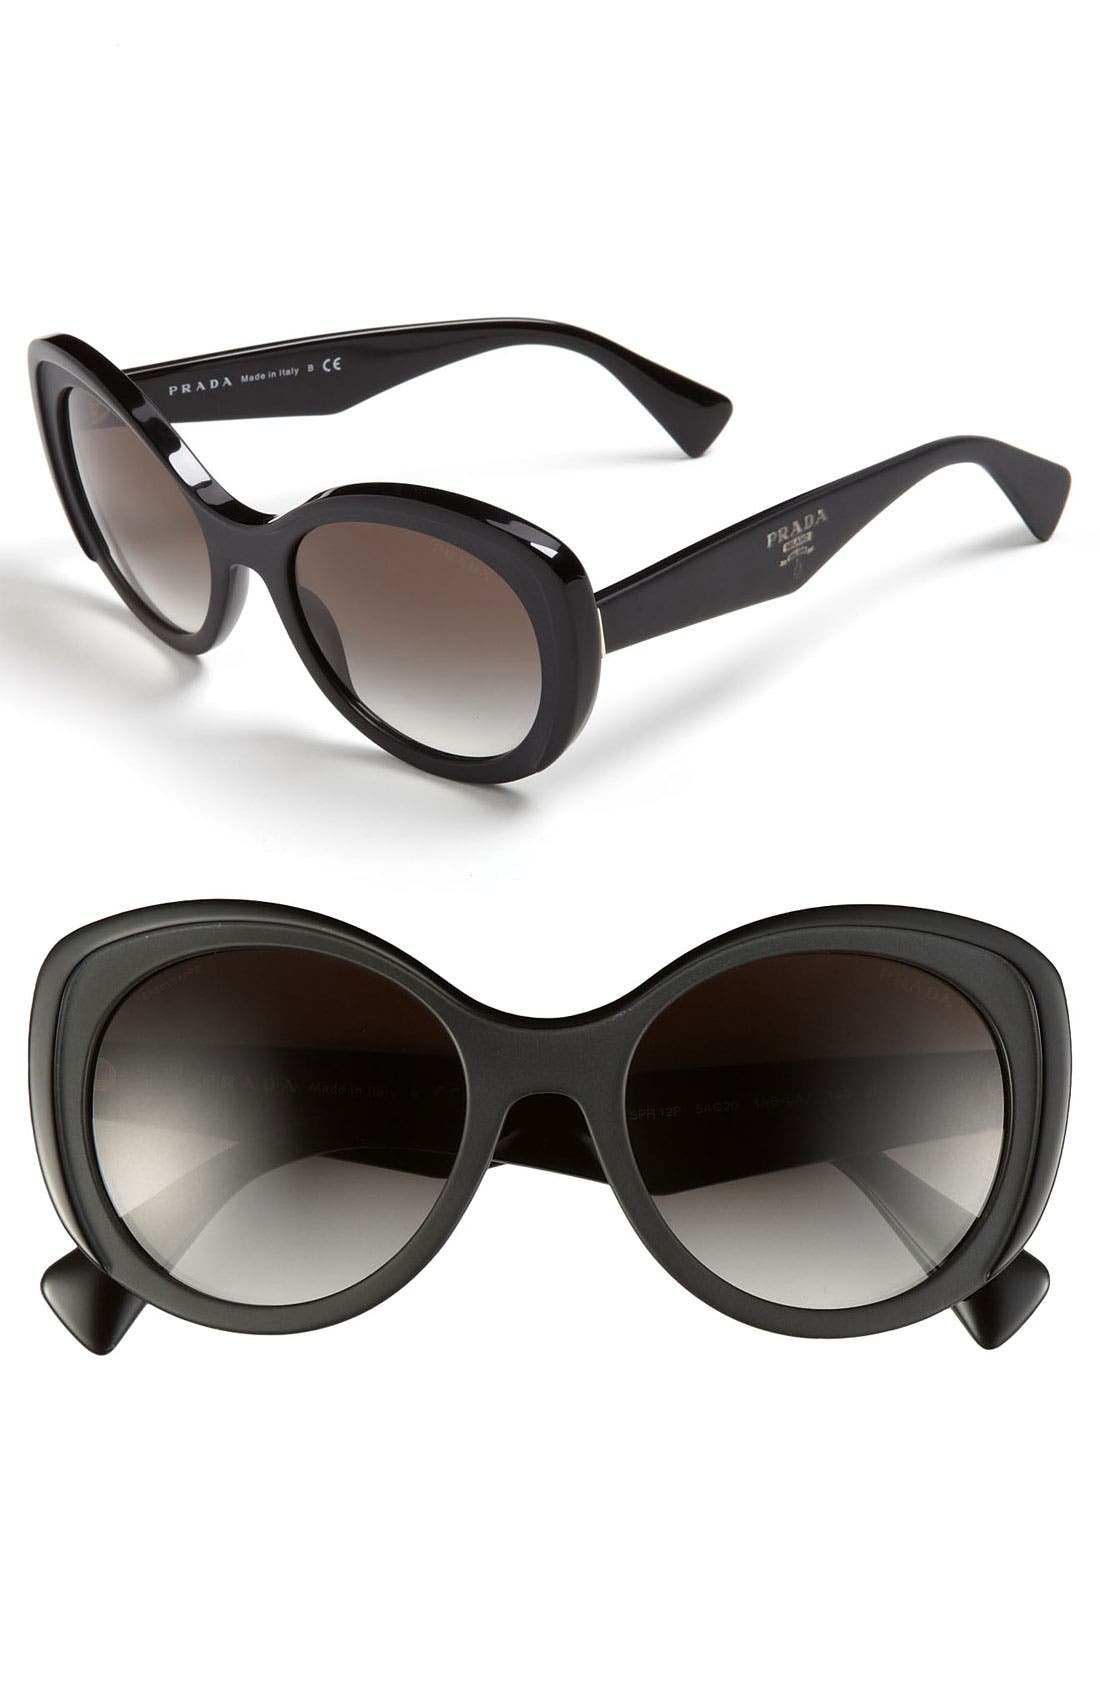 Main Image - Prada 54mm Butterfly Sunglasses